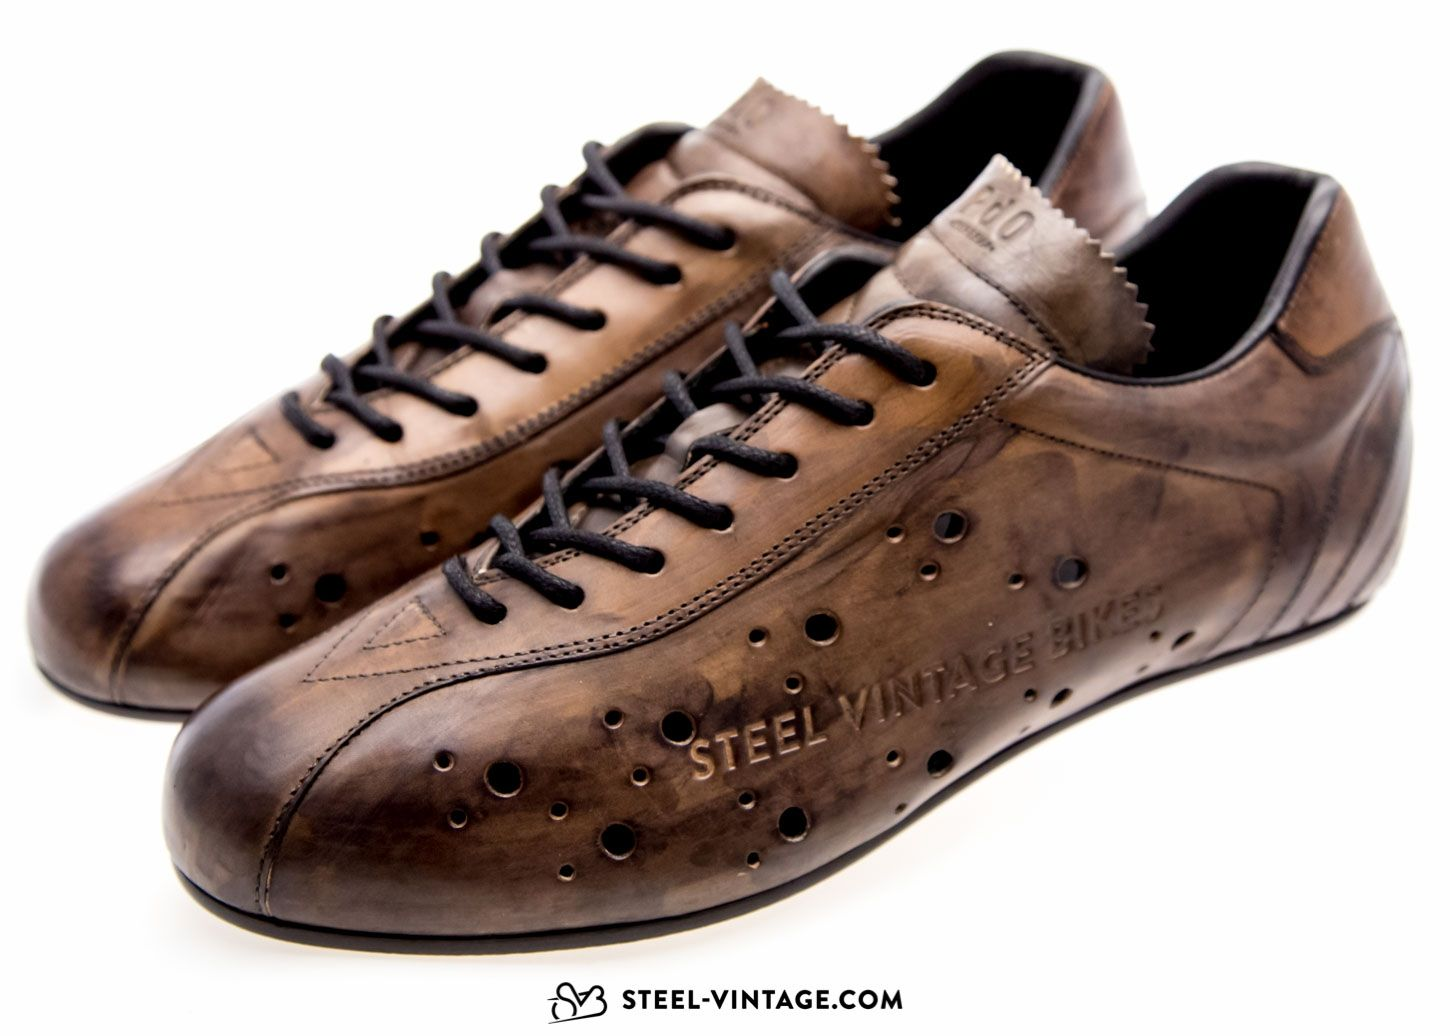 SVB Vuelta Pro Cycling Shoes Brown